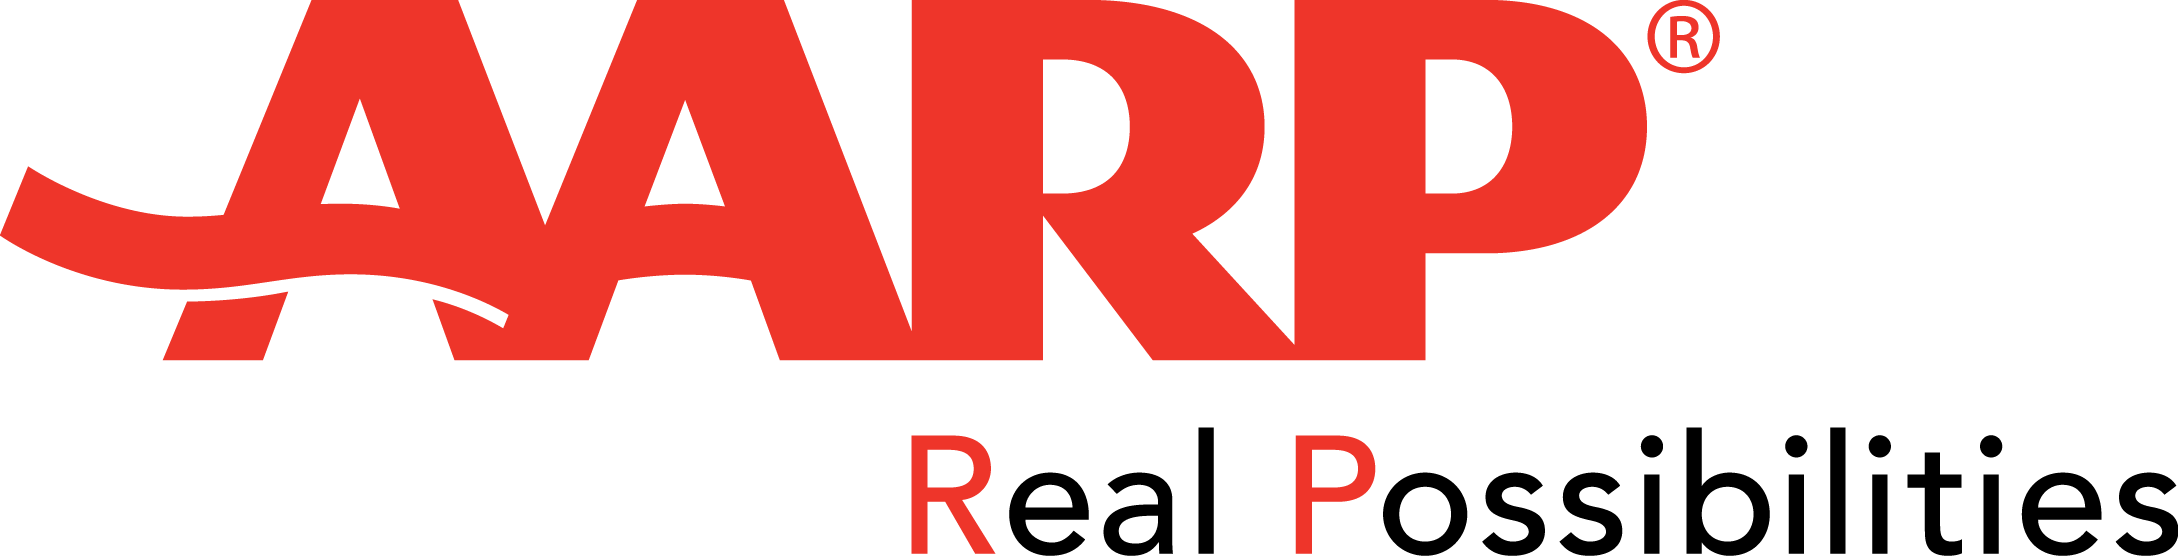 aarp real possibilities png logo #5811